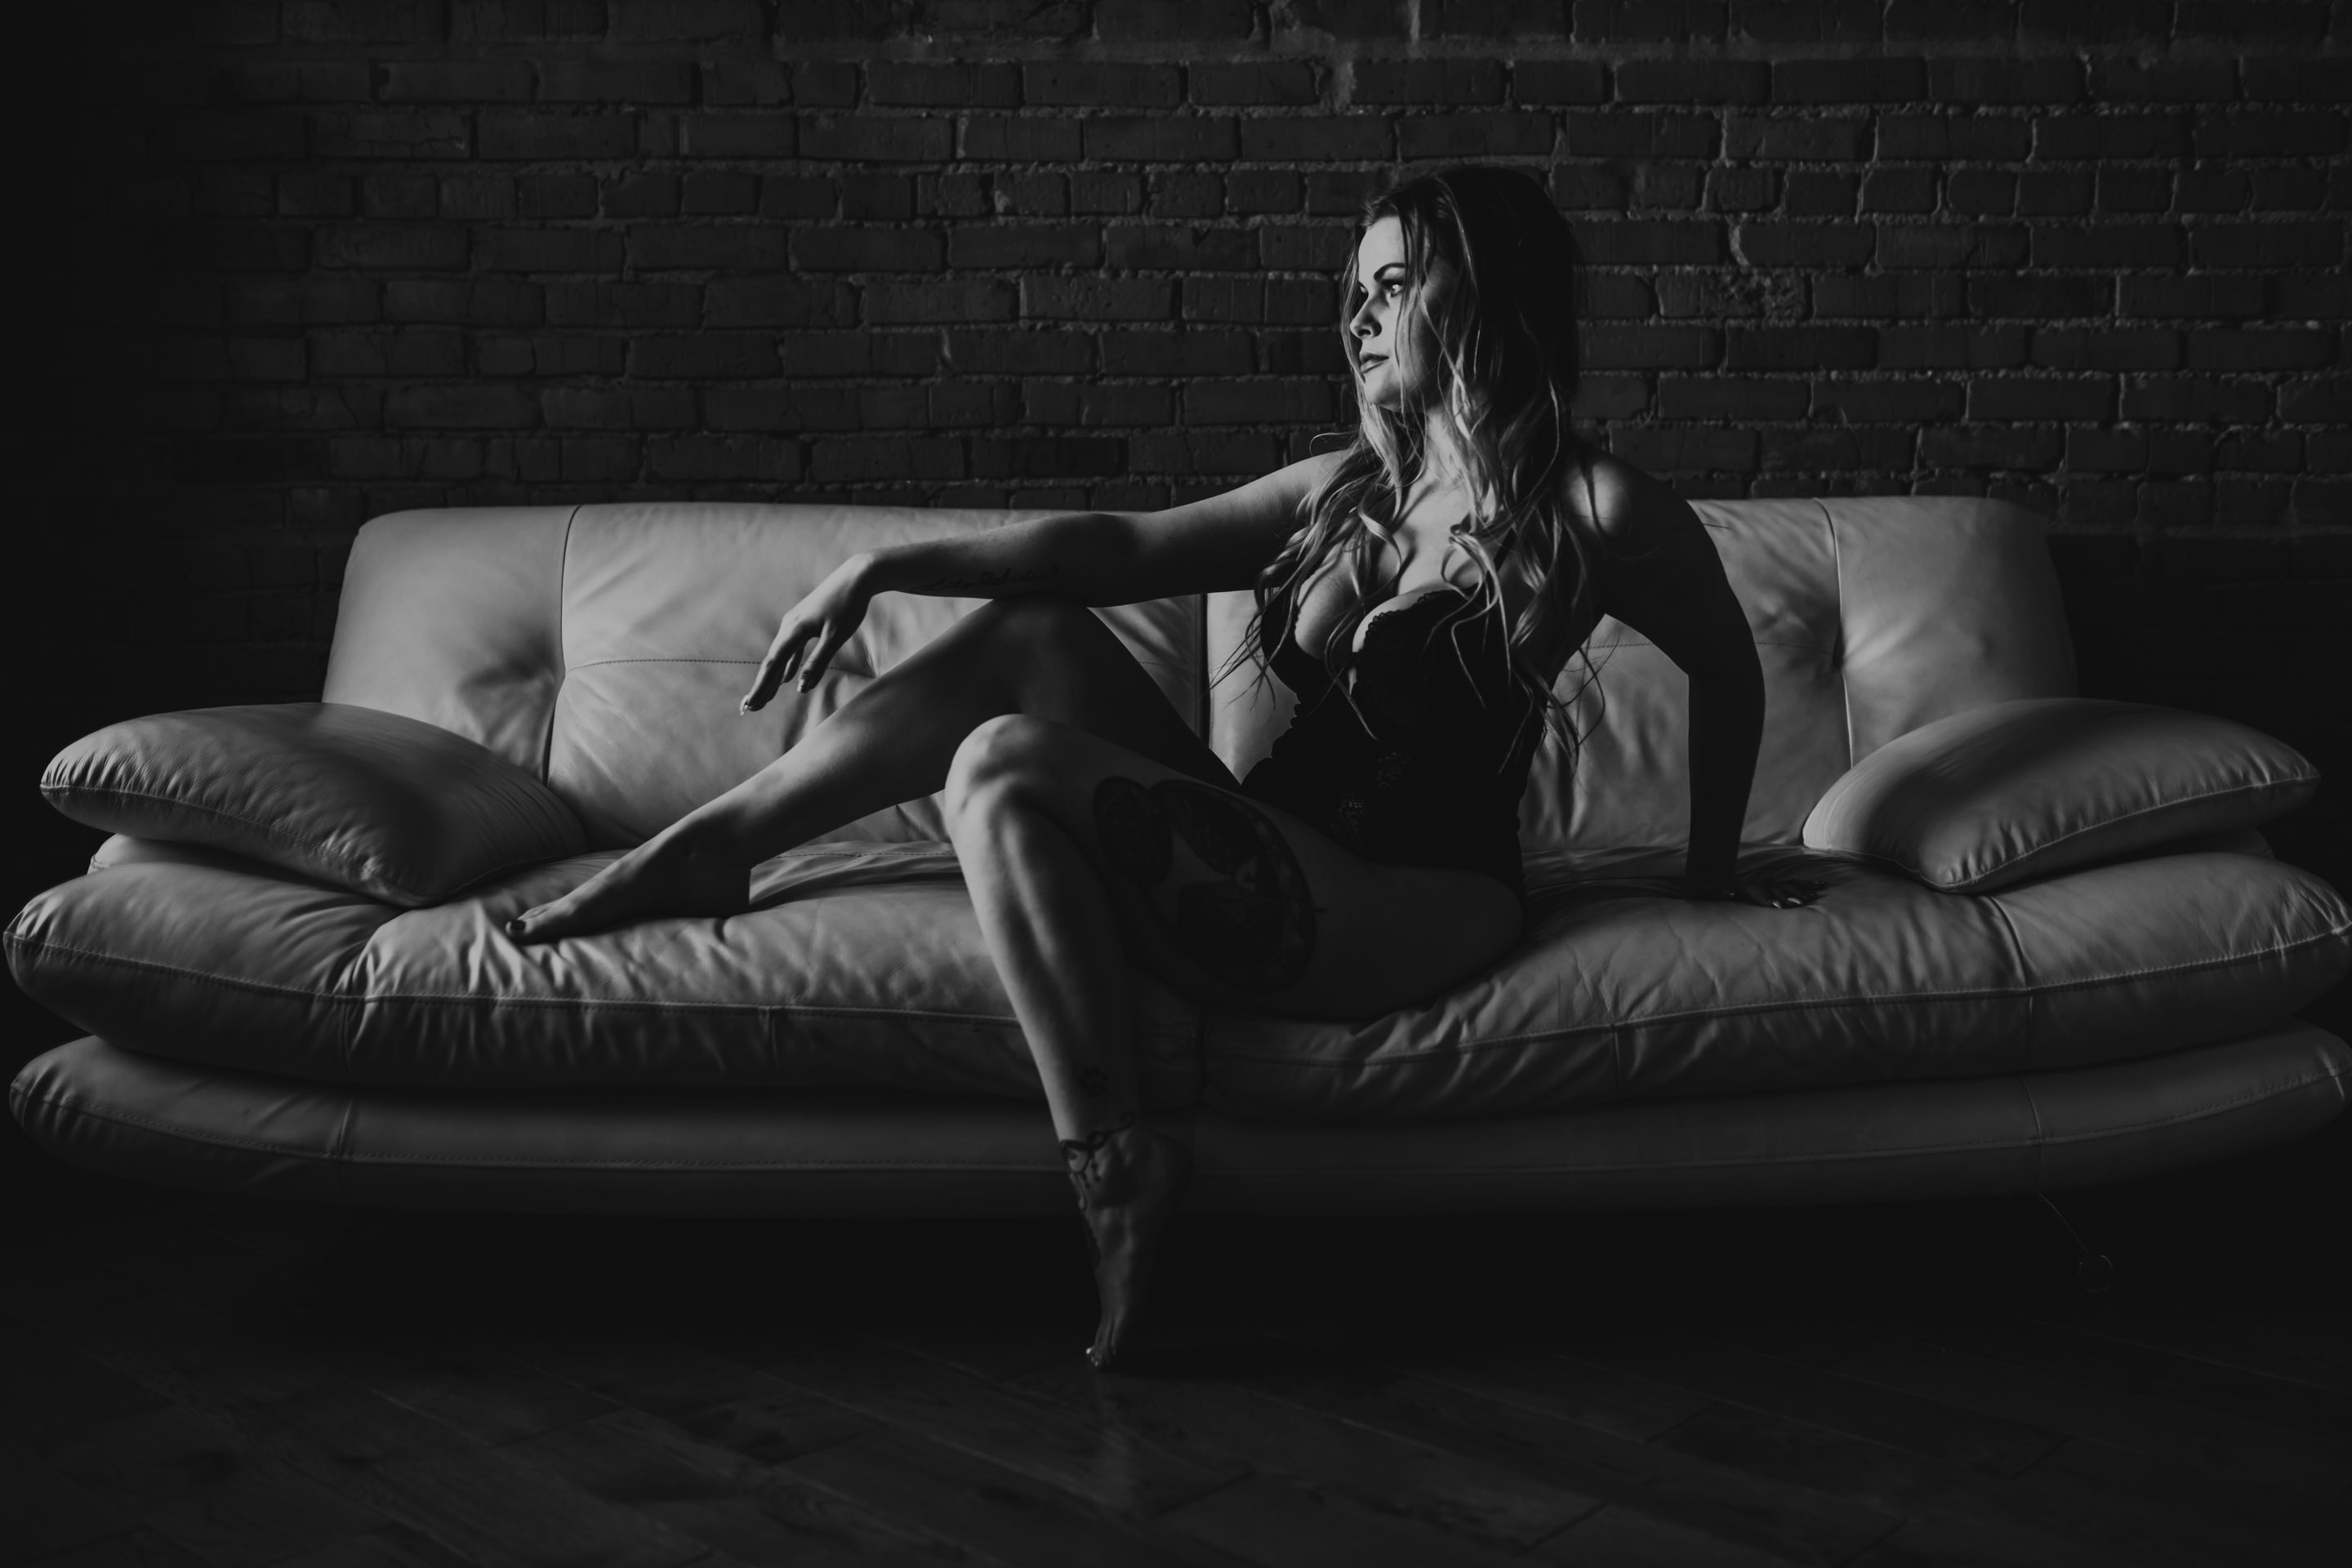 Calgary Boudoir, Edmonton Boudoir, Calgary Boudoir Photographer, Calgary Boudoir Photographers, Best Boudoir Photographers, Boudoir Ideas, Boudoir Photoshoot, Boudoir Inspiration, YYC Boudoir, Boudoir Poses, Intimate Portraits, Calgary Photographer, Calgary Photographers